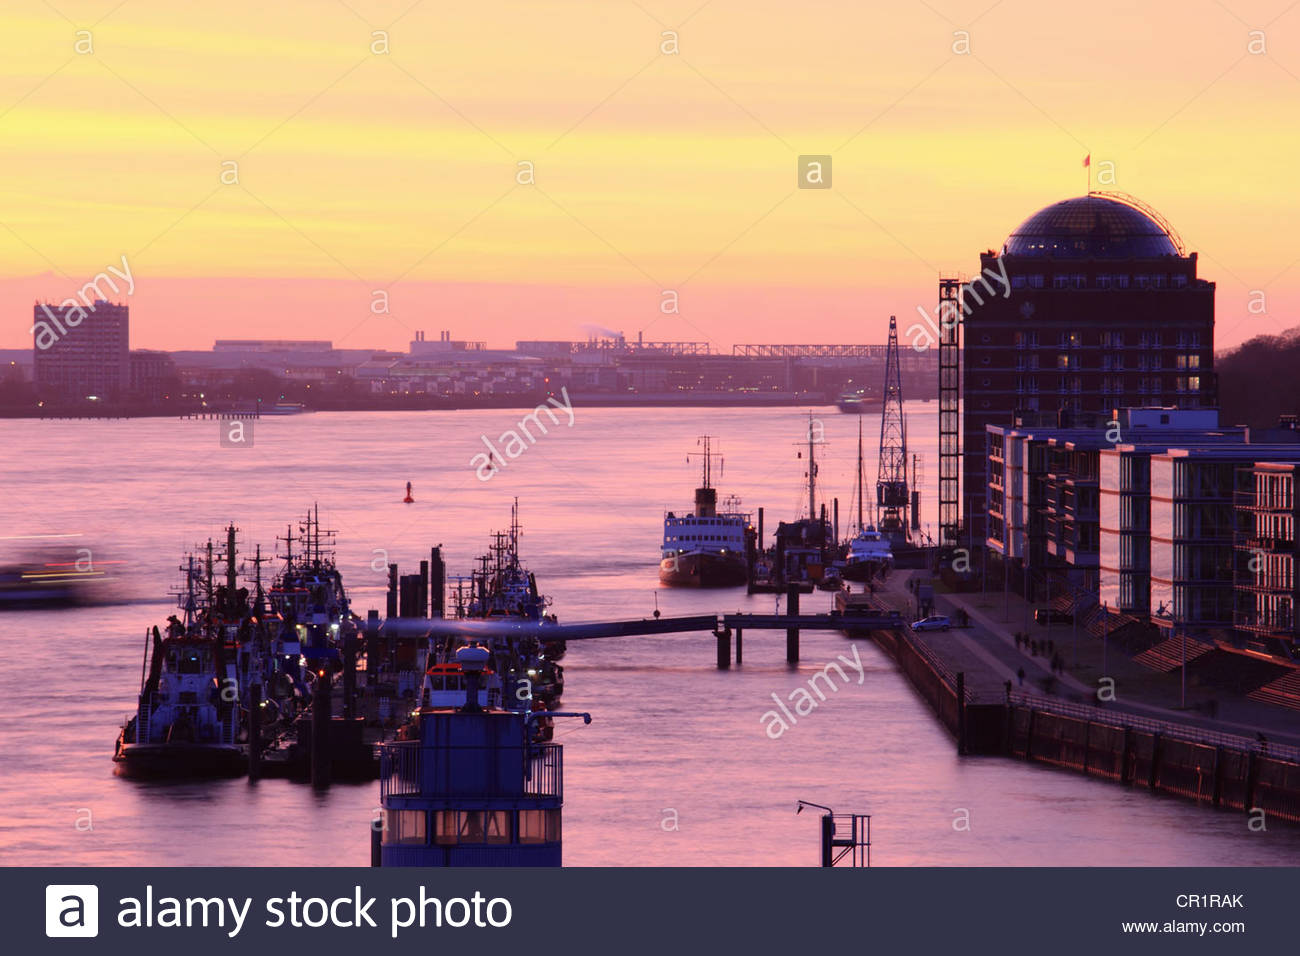 Aerial view of trawlers in urban pier - Stock Image